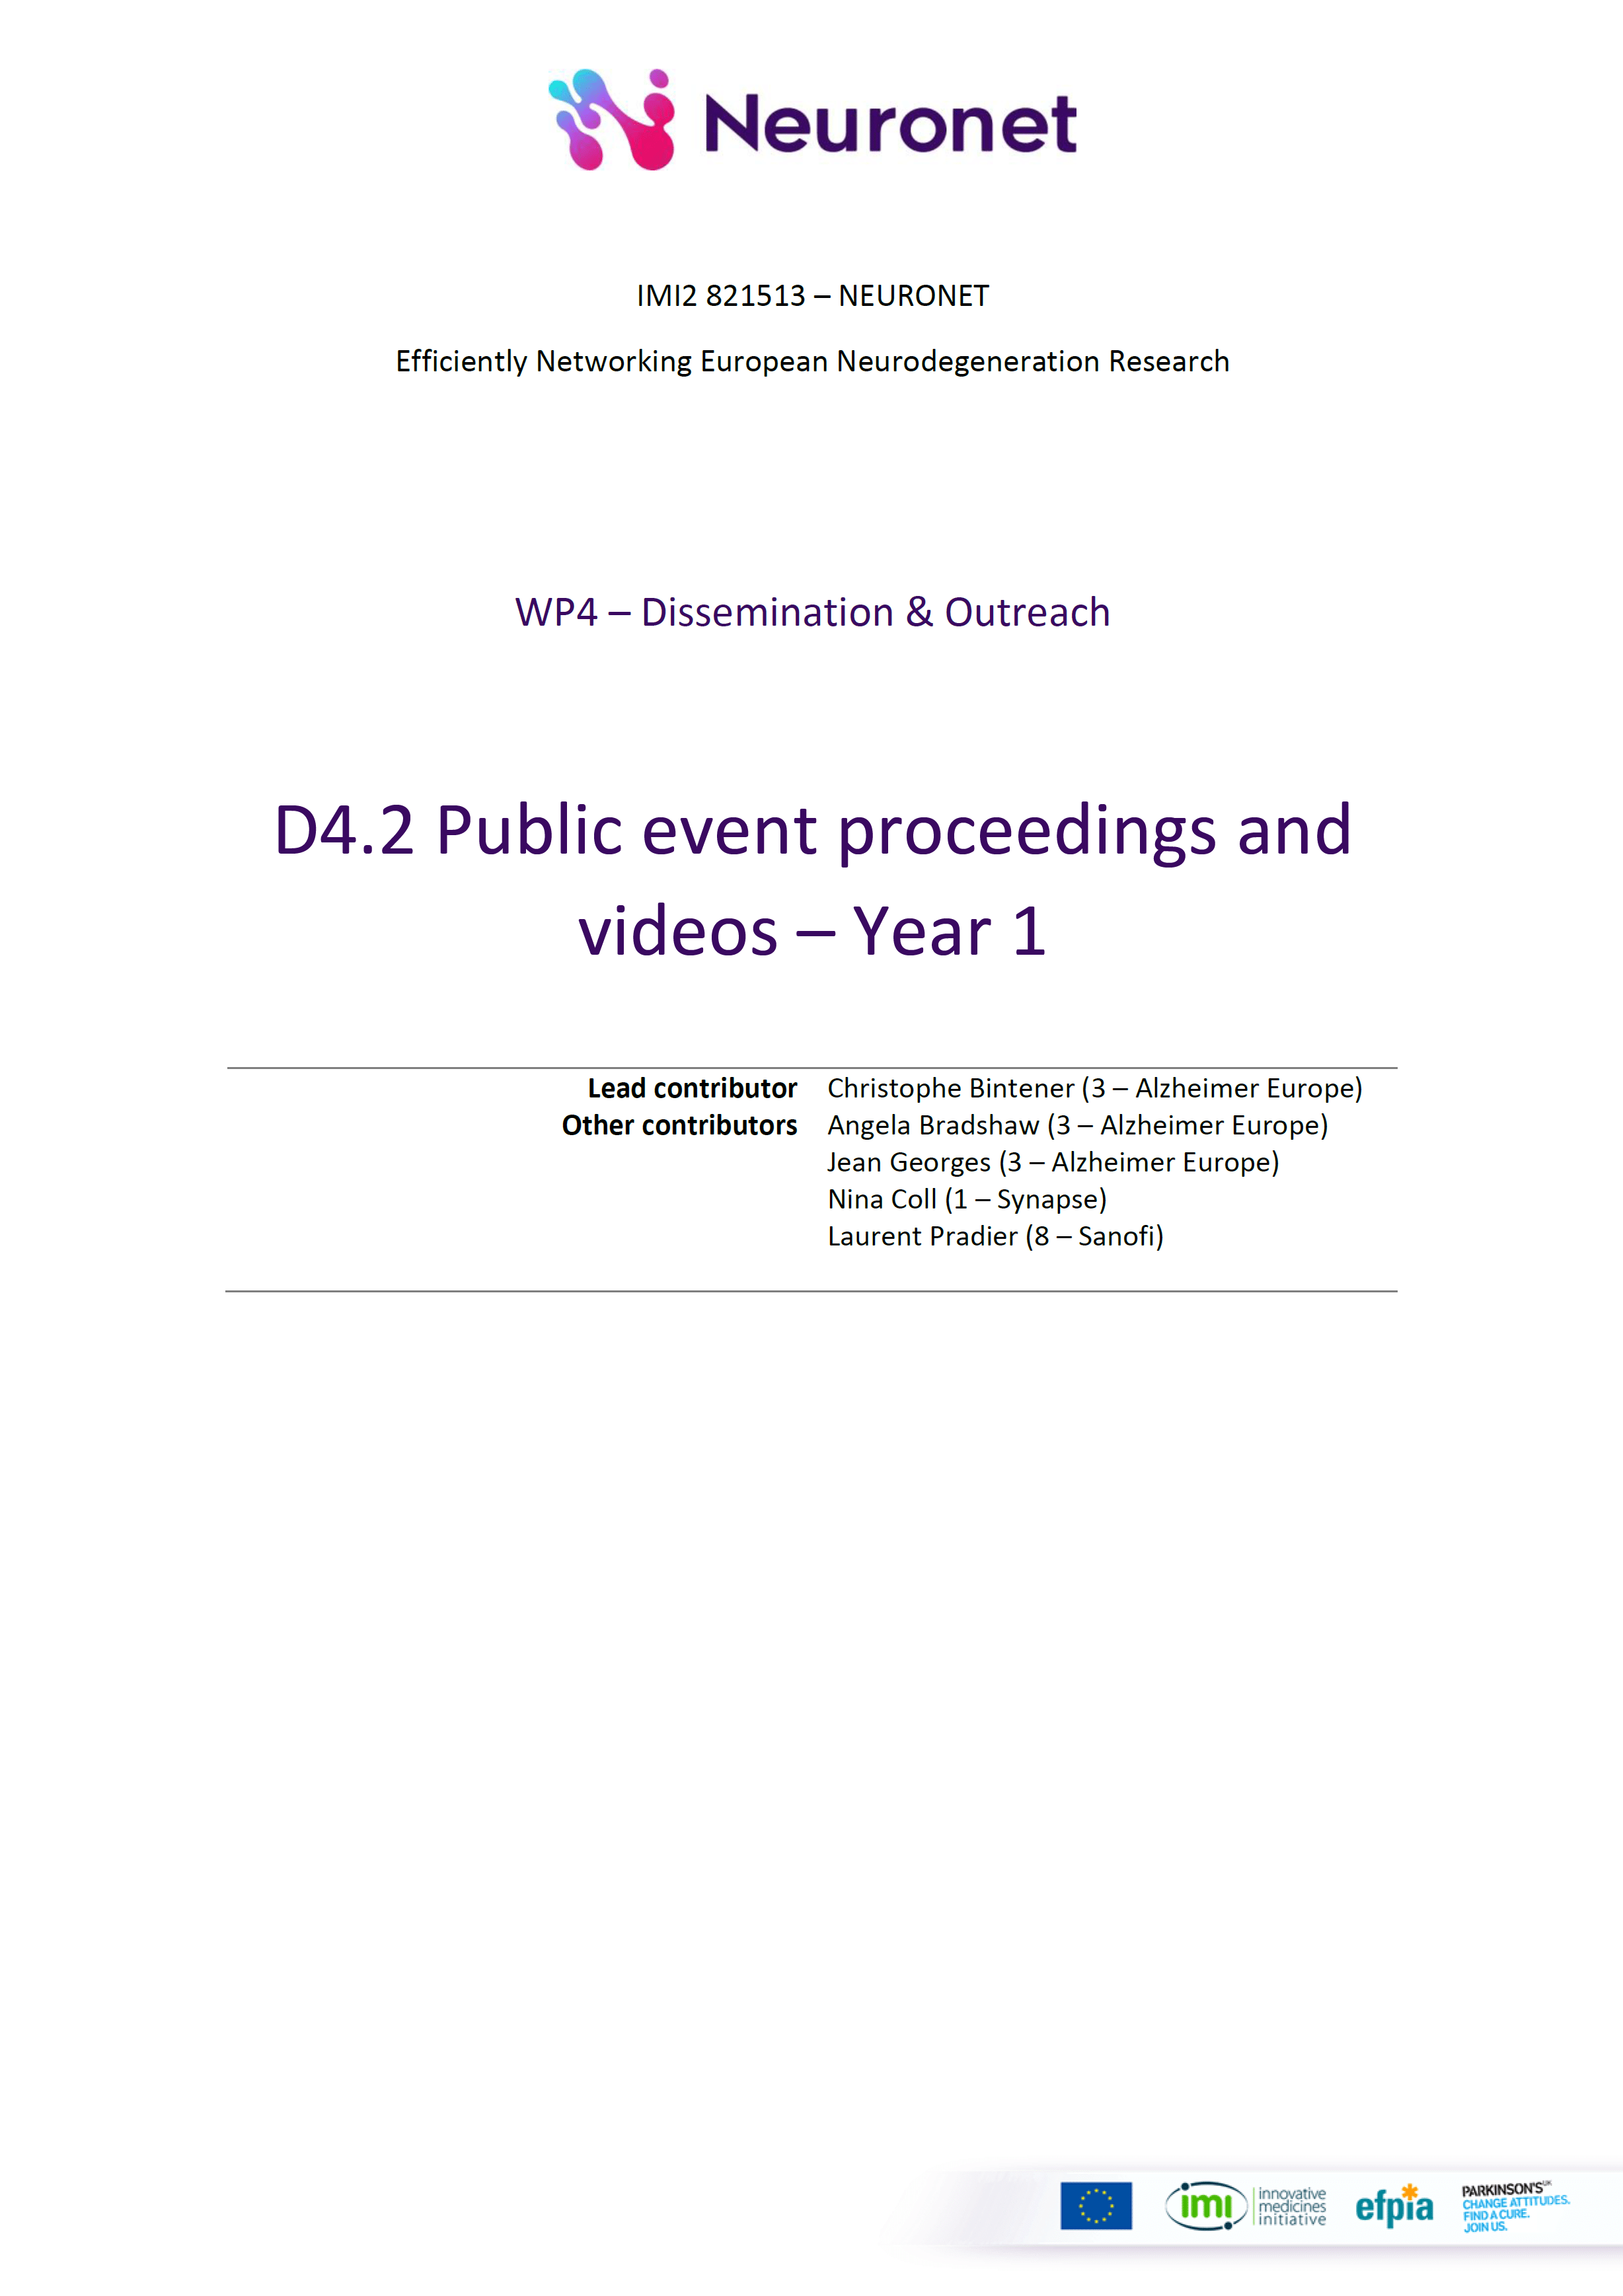 D4.2 Public event proceedings and videos - Year 1